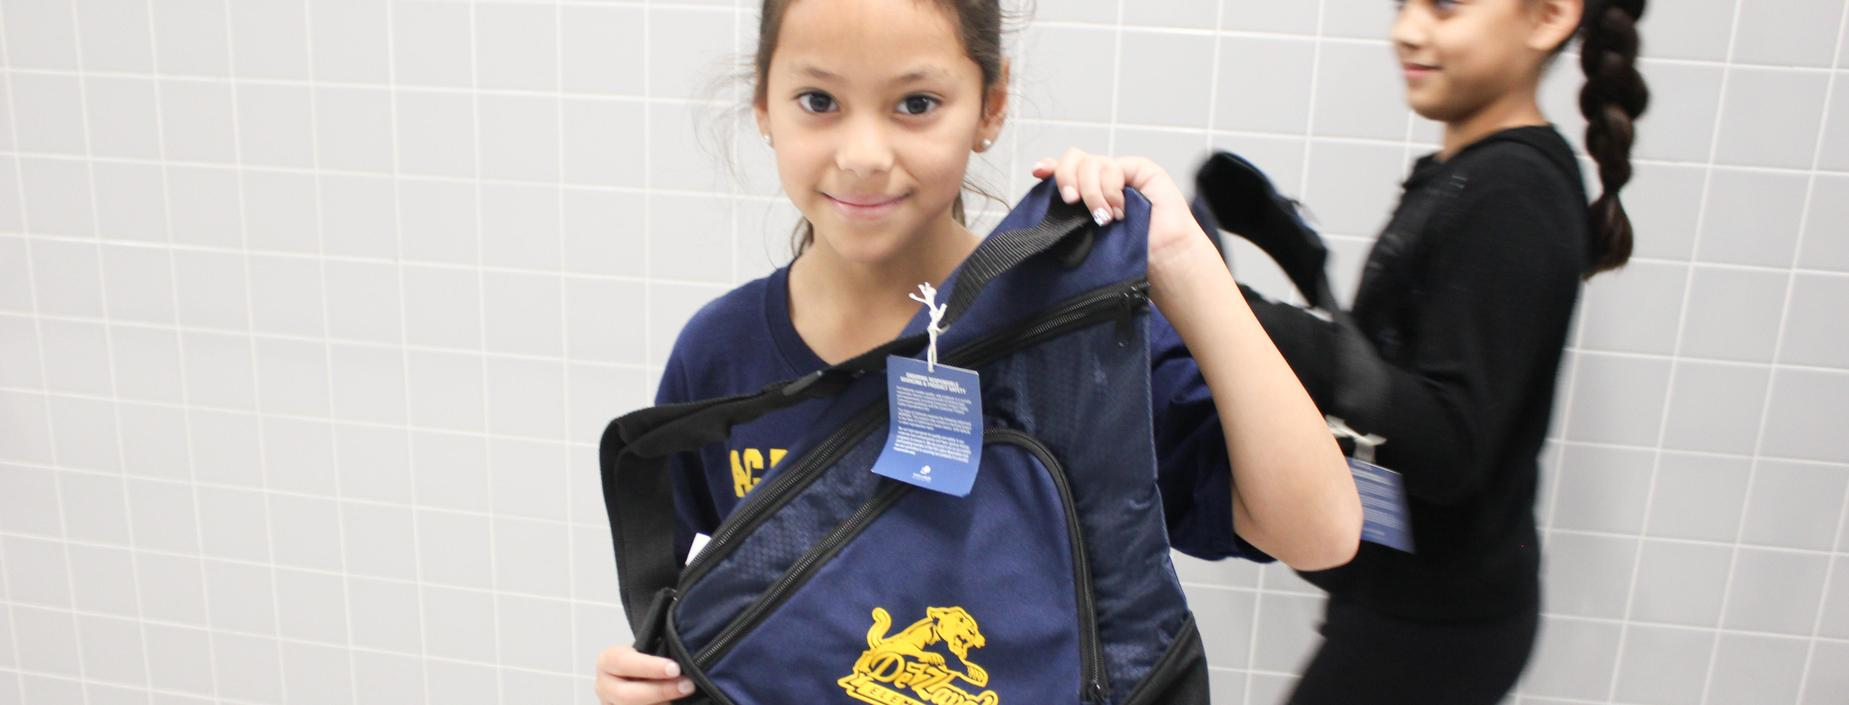 student with backpack gift